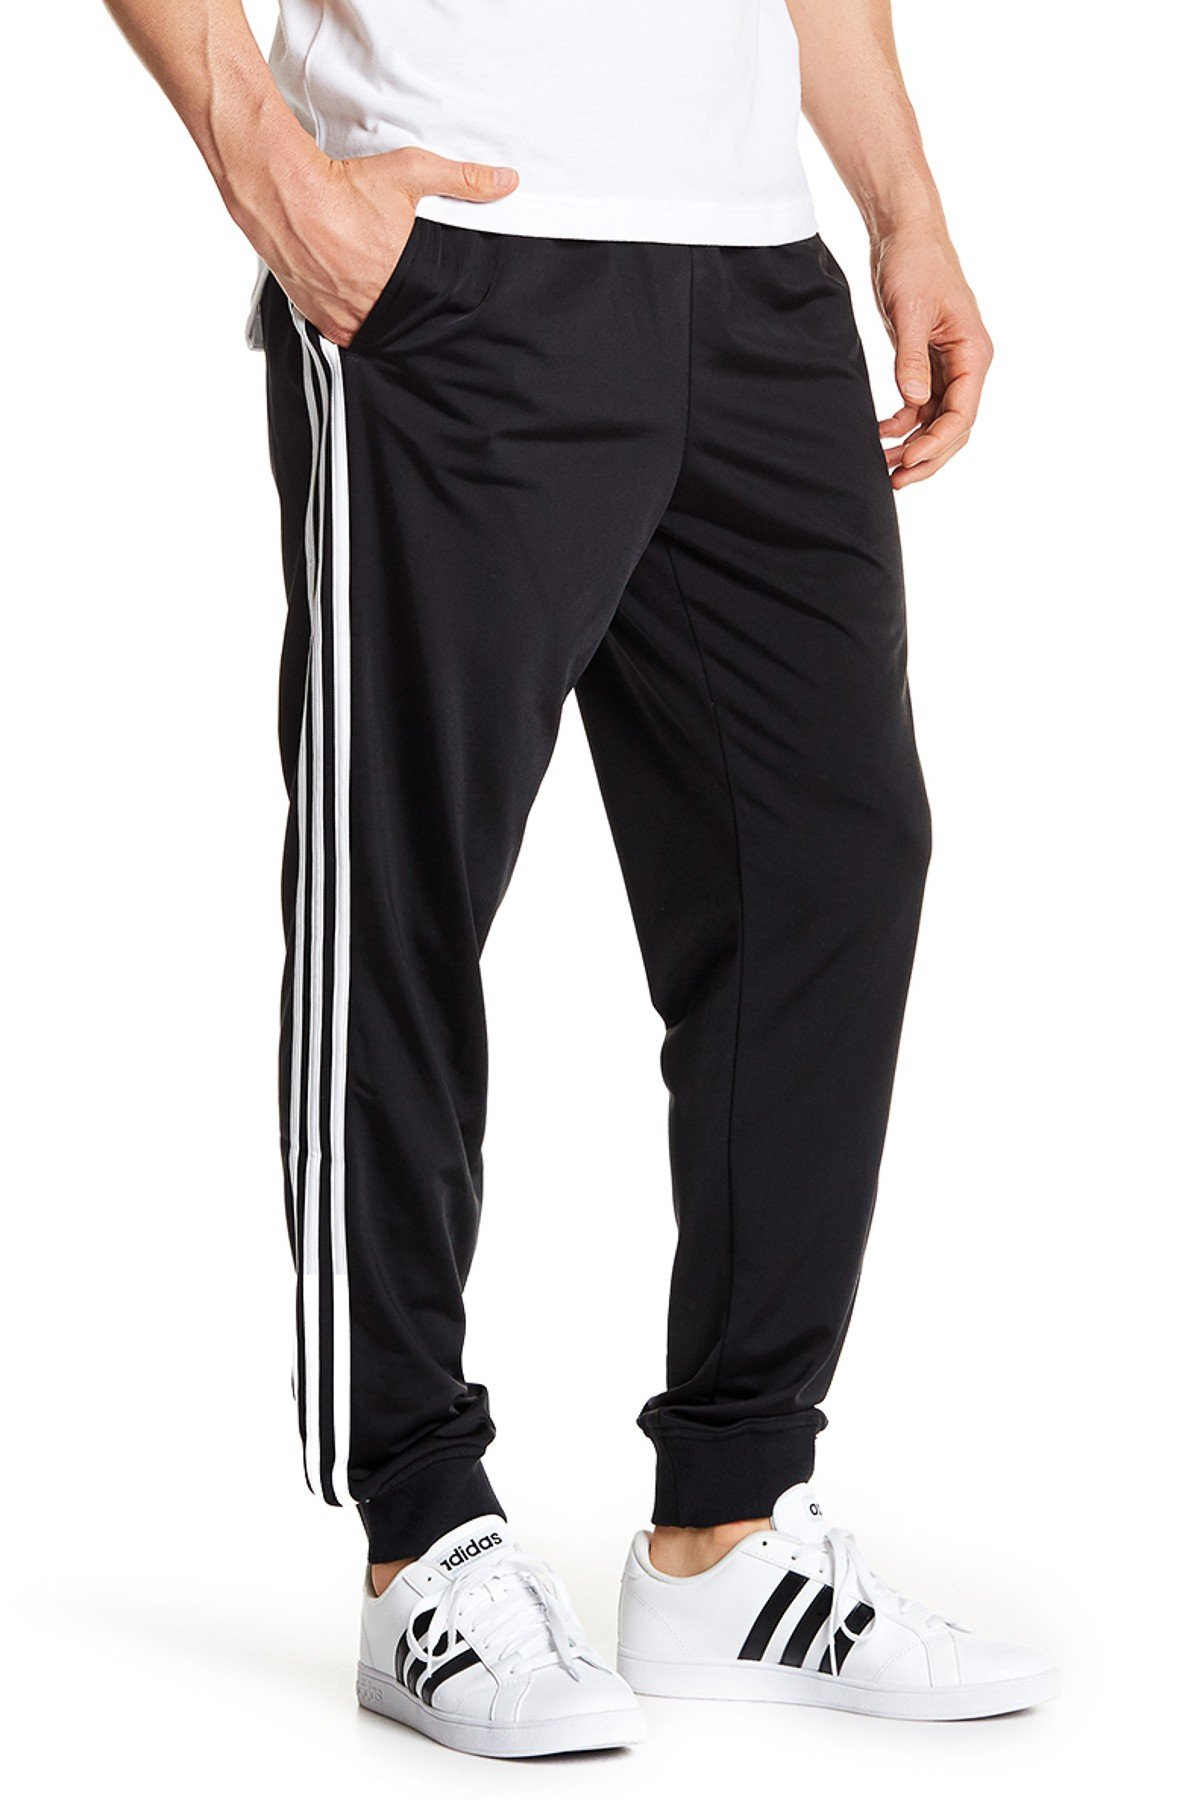 adidas Men's Essentials Tricot Jogger Pants, Black/White, XX-Large by adidas